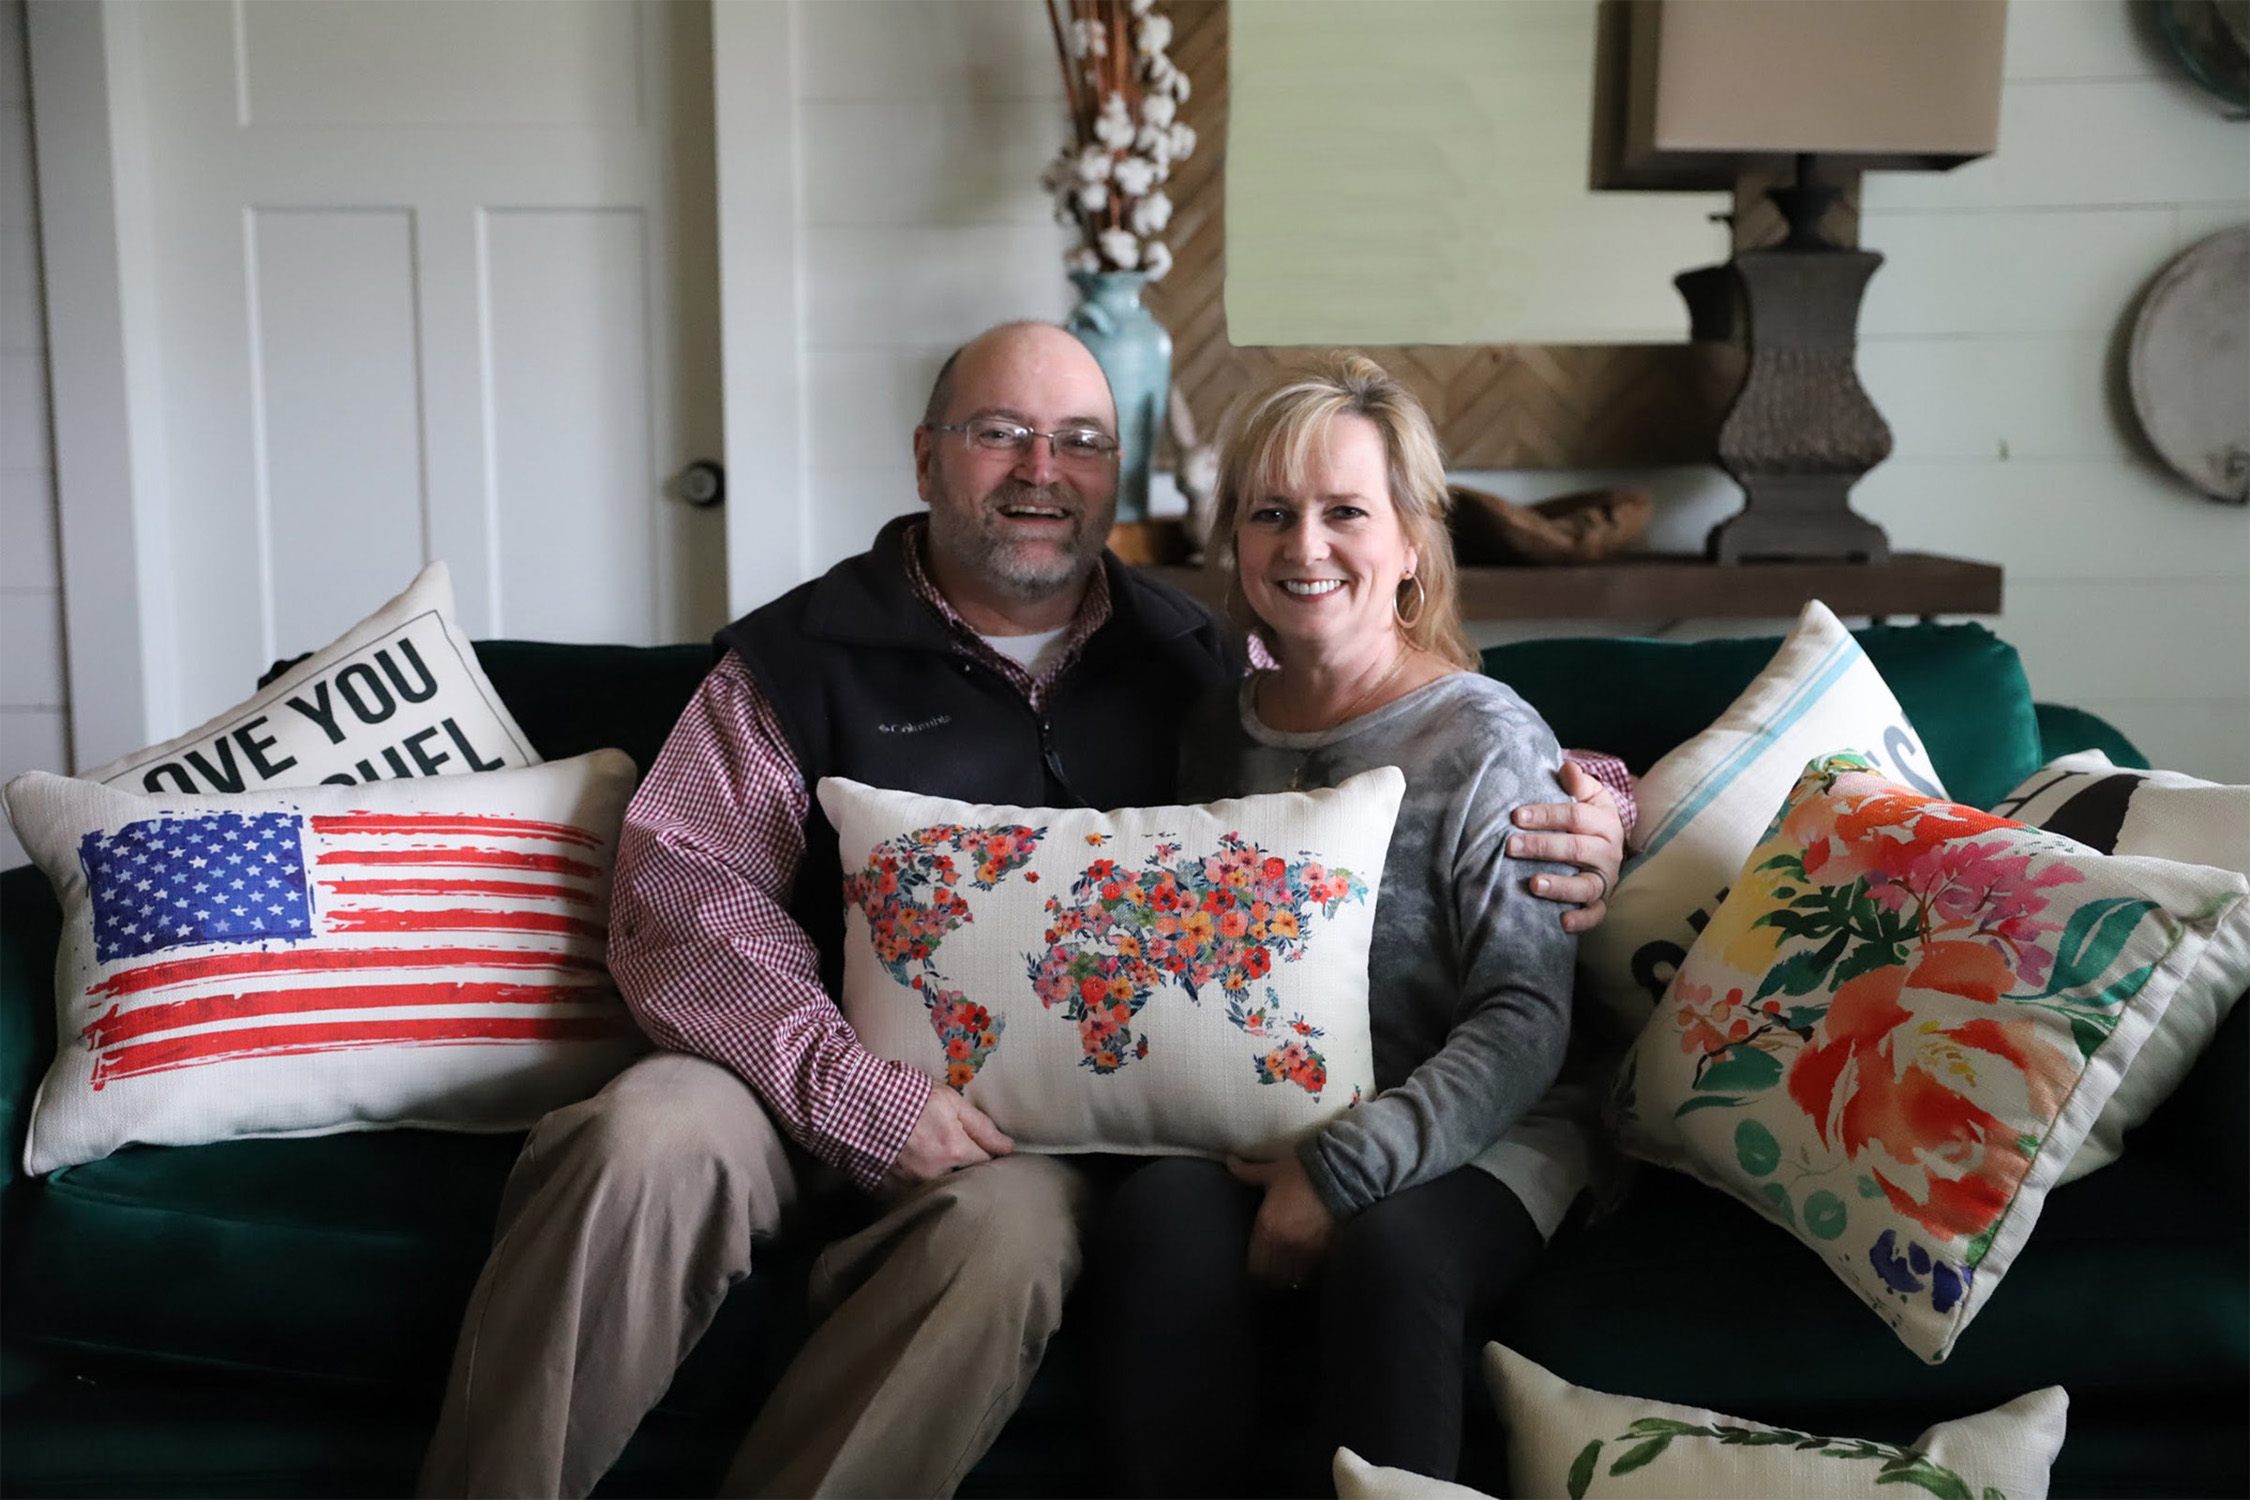 susan and tony with pillows.jpg